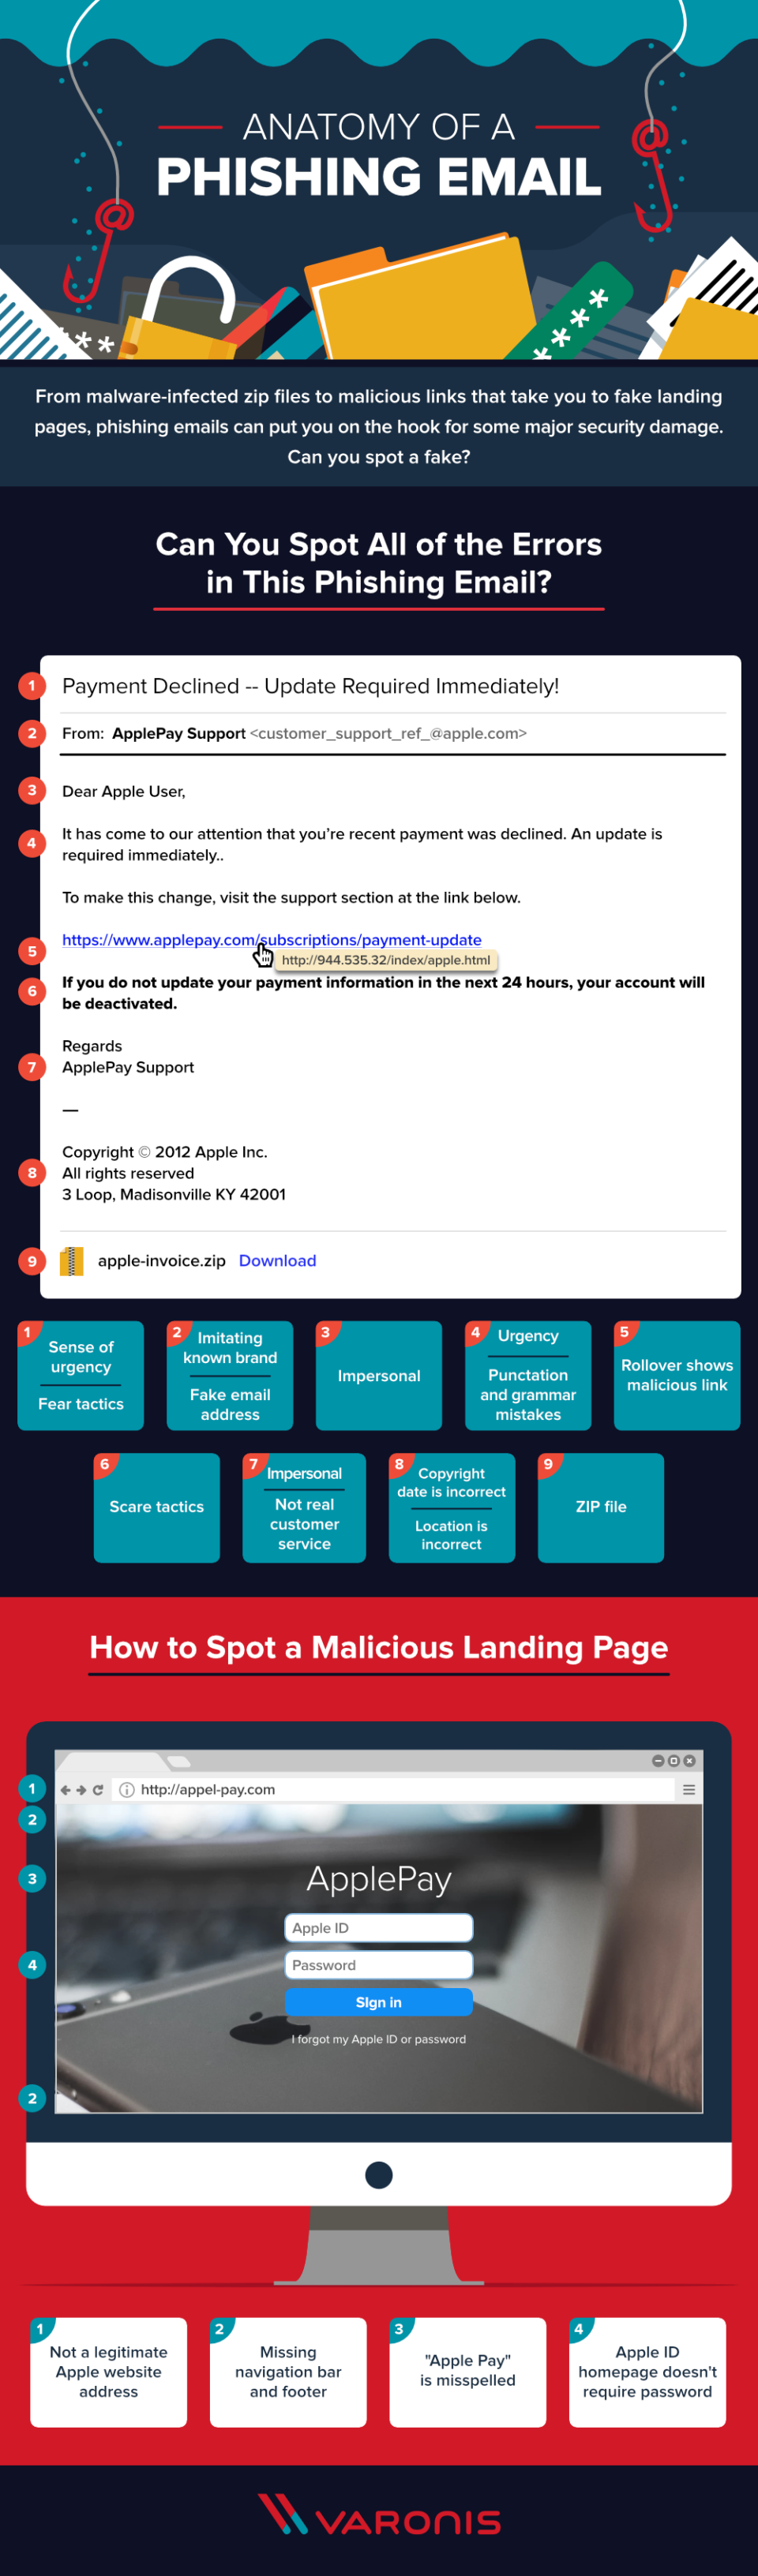 The Anatomy of a Phishing Email #infographic